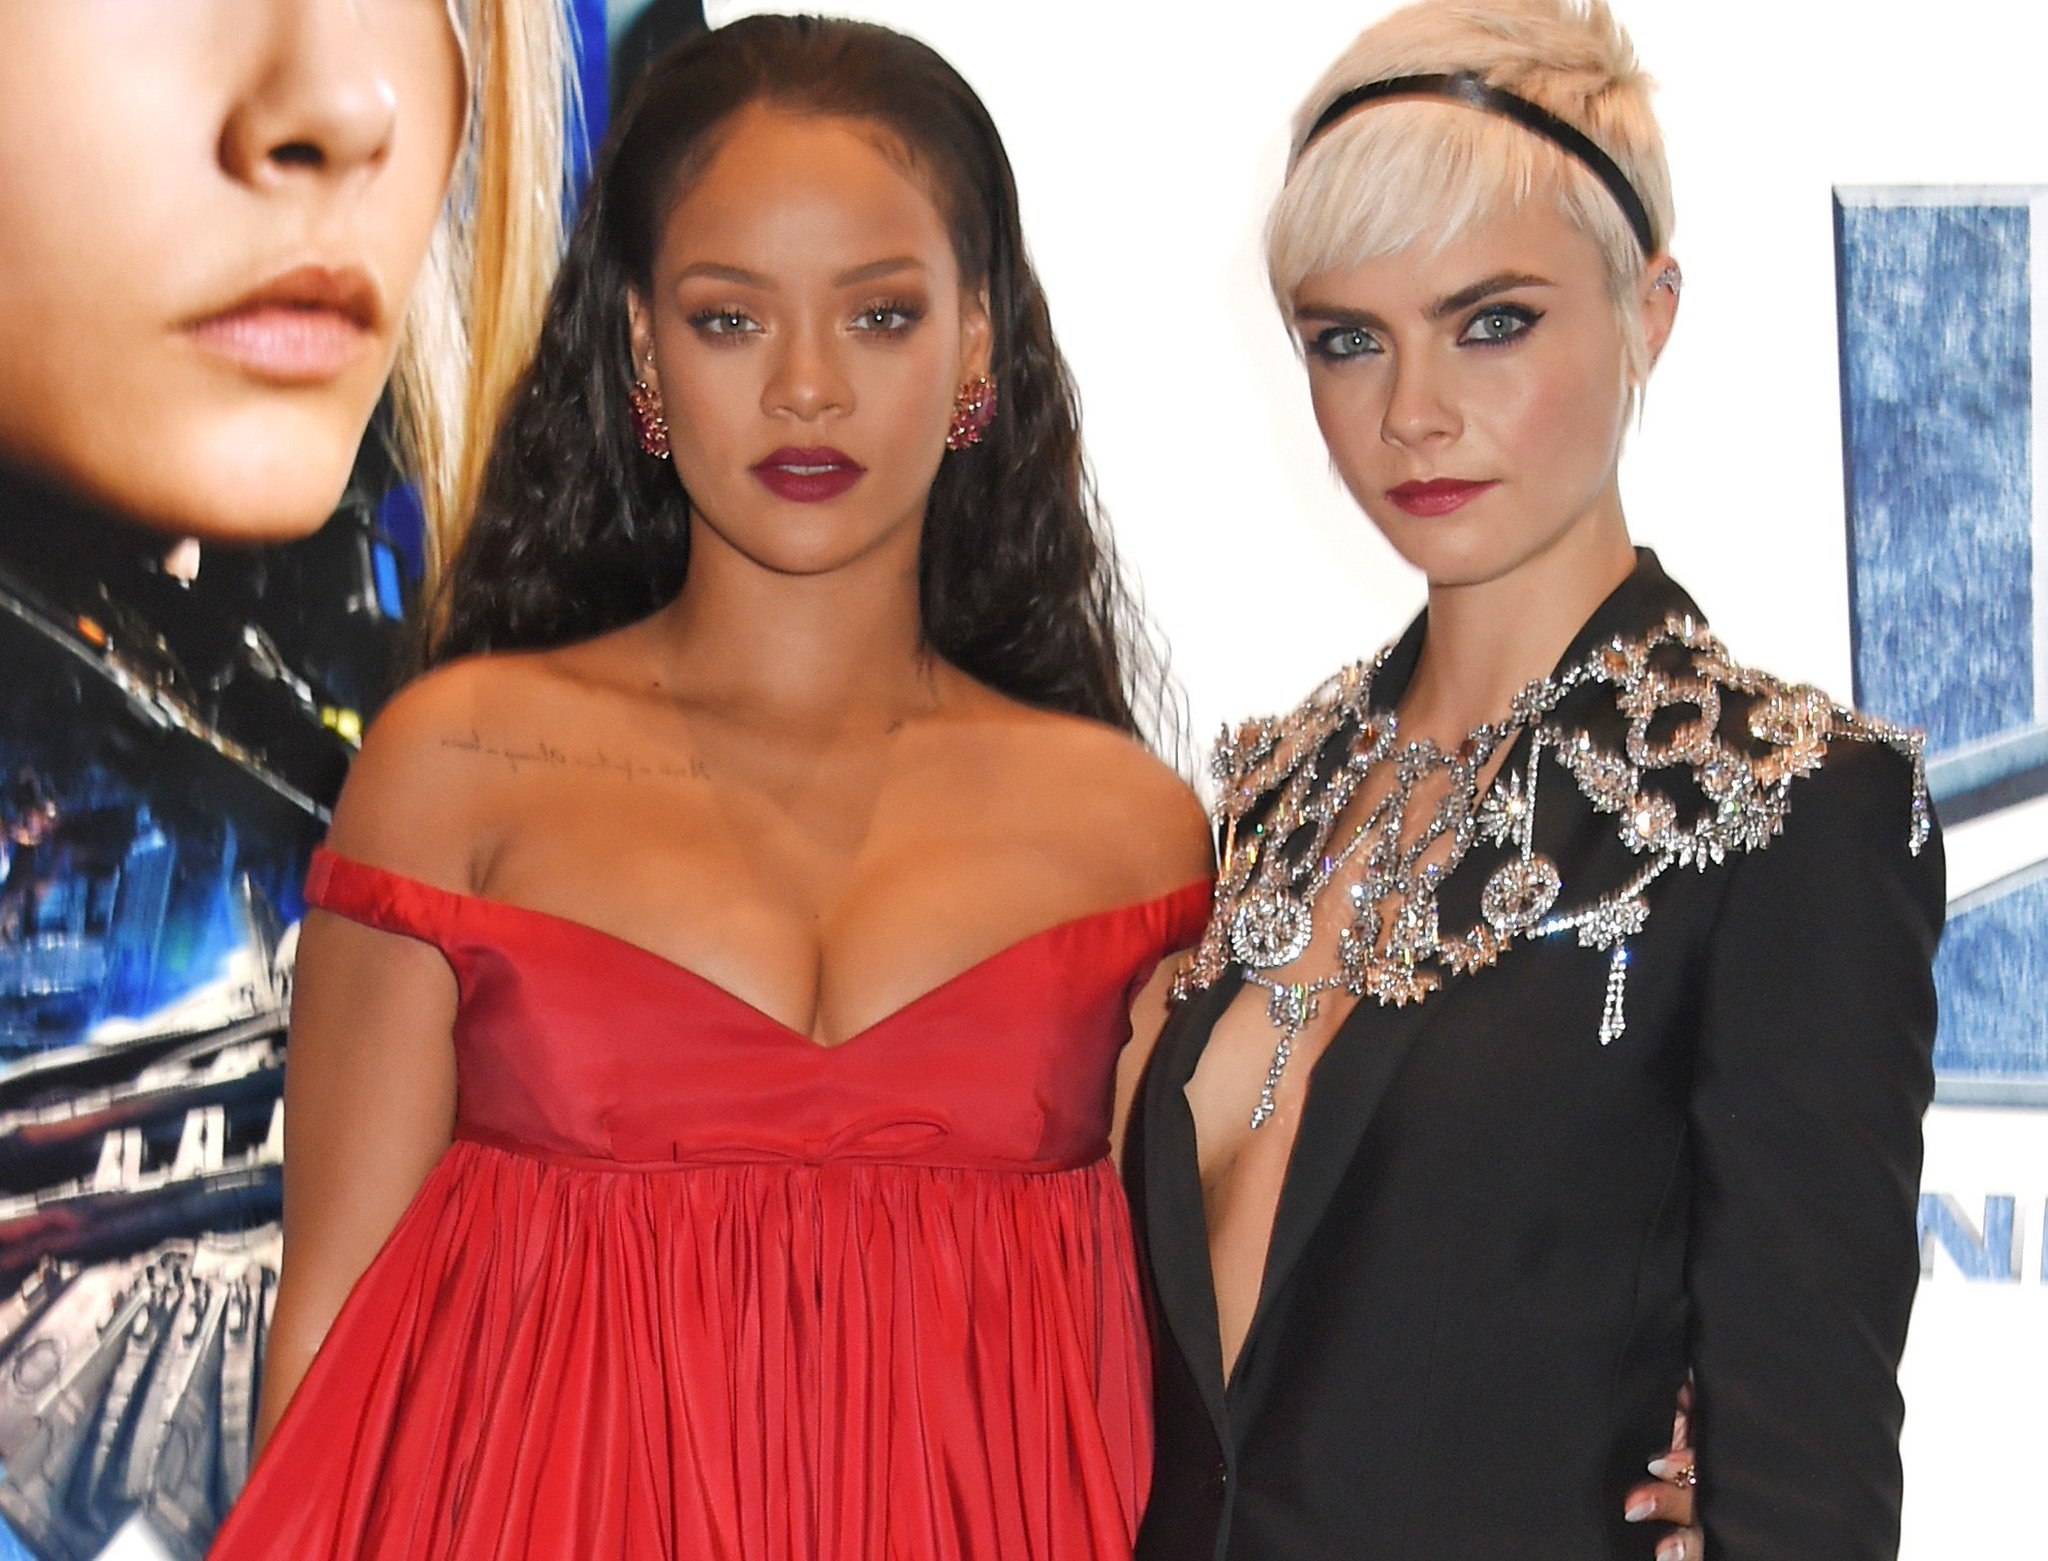 Cara Delevingne just hilariously called herself out for staring at Rihanna's cleavage: https://t.co/0h1xb6WfZF https://t.co/I7g3MykPeG